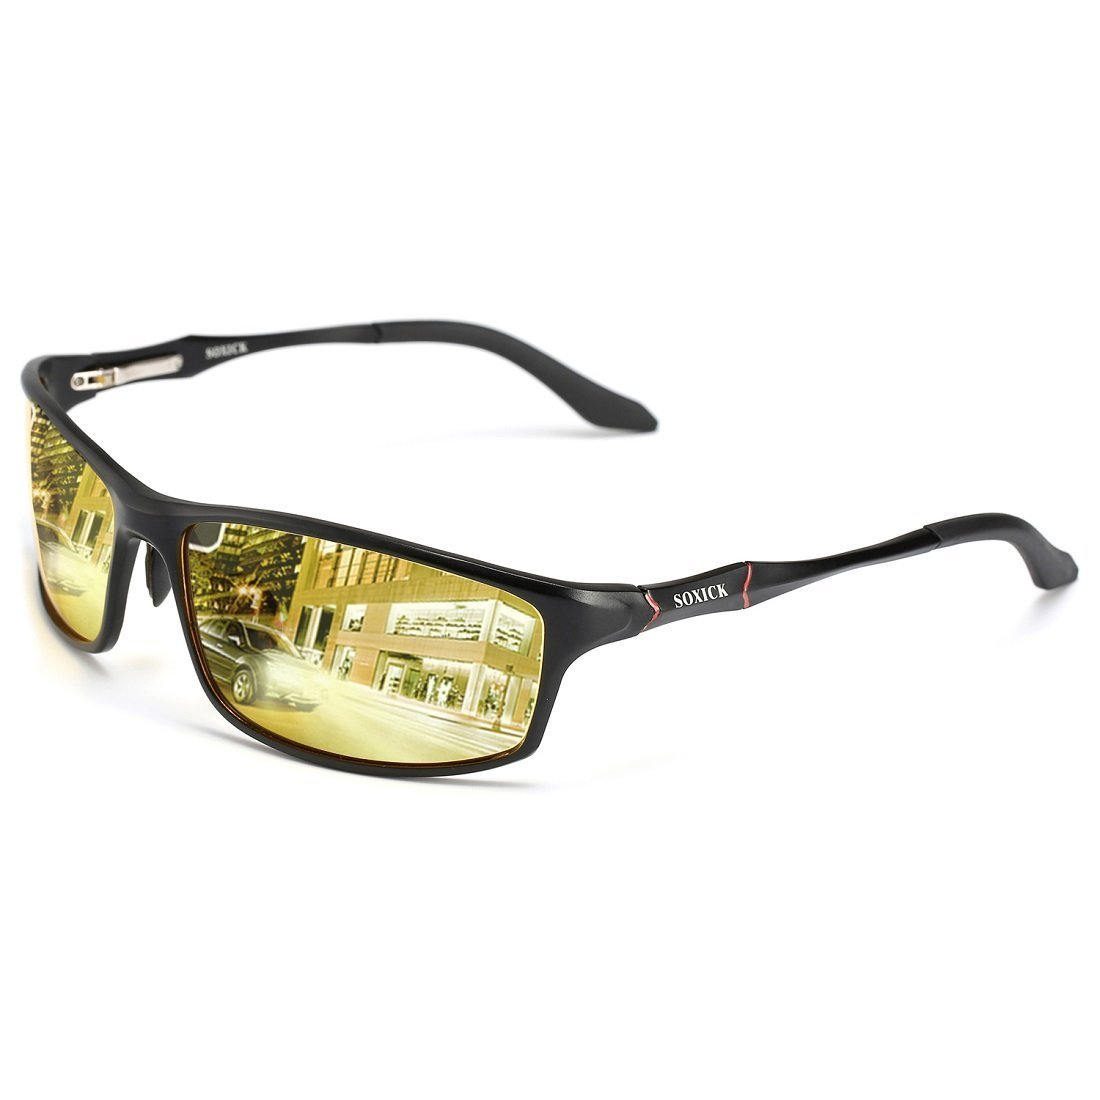 HD Night Driving Glasses, Polarized Sunglasses Anti Glare Safe Night Vision Glasses xds6128